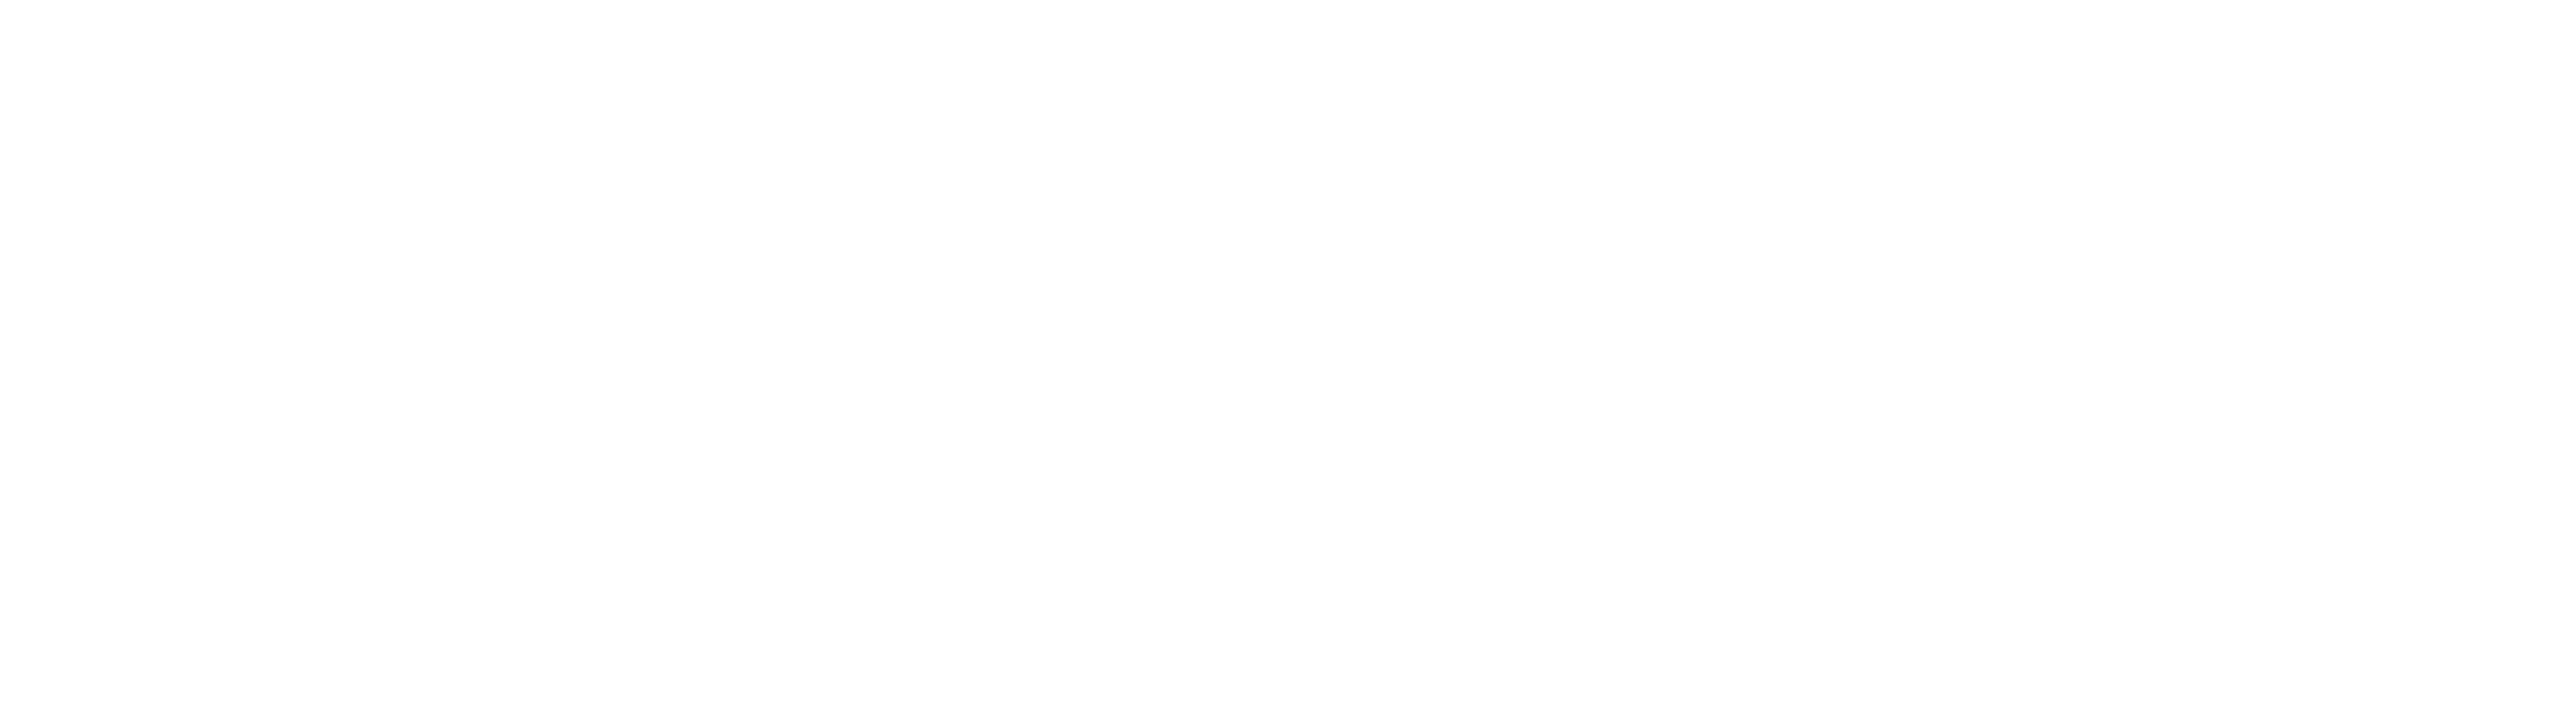 Soul Choice Ministries logo